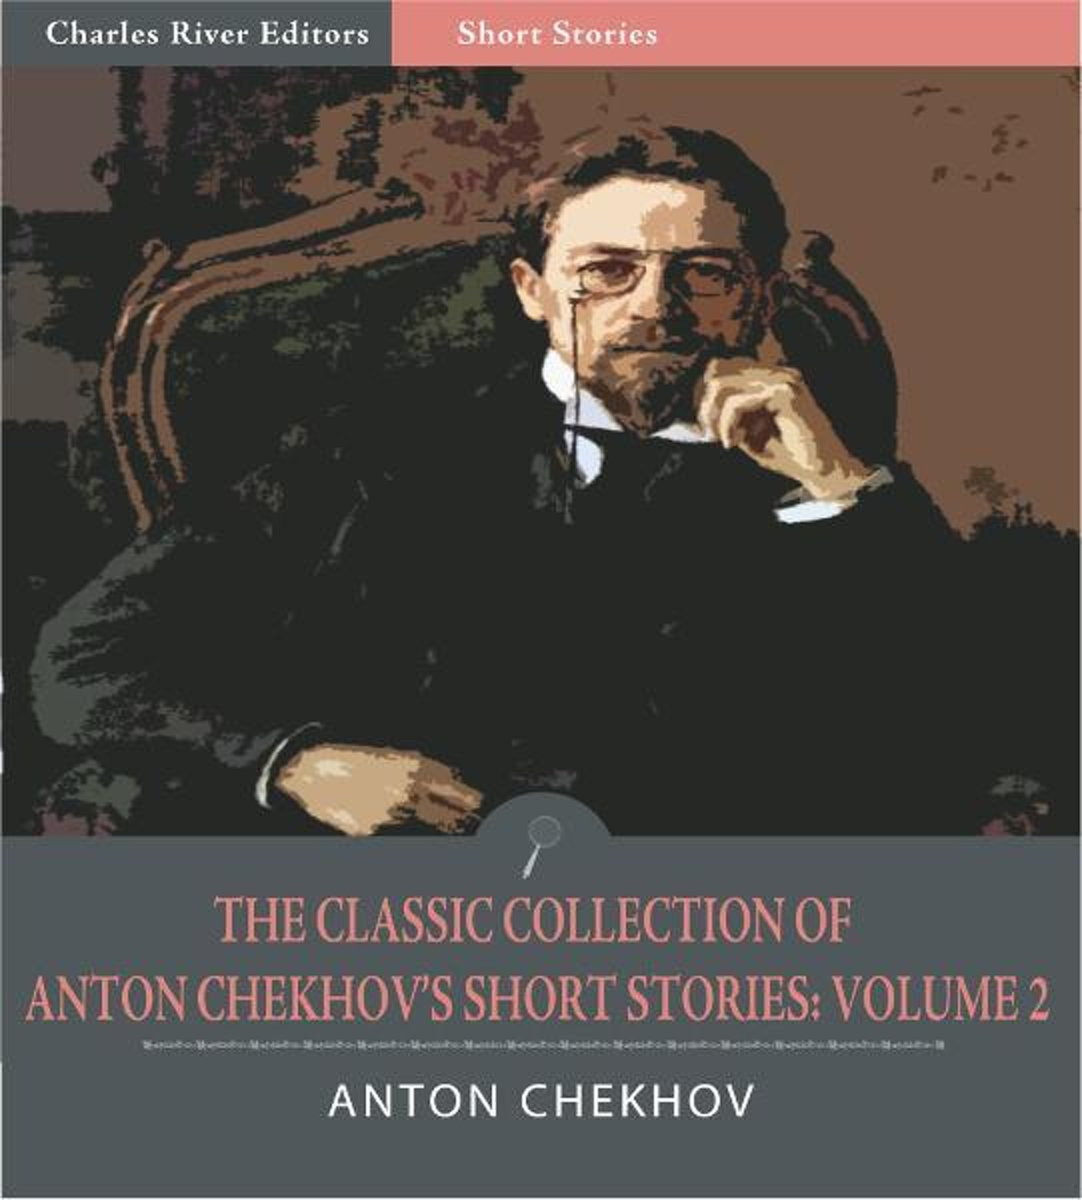 The Classic Collection of Anton Chekhovs Short Stories: Volume II (51 Short Stories) (Illustrated Edition)